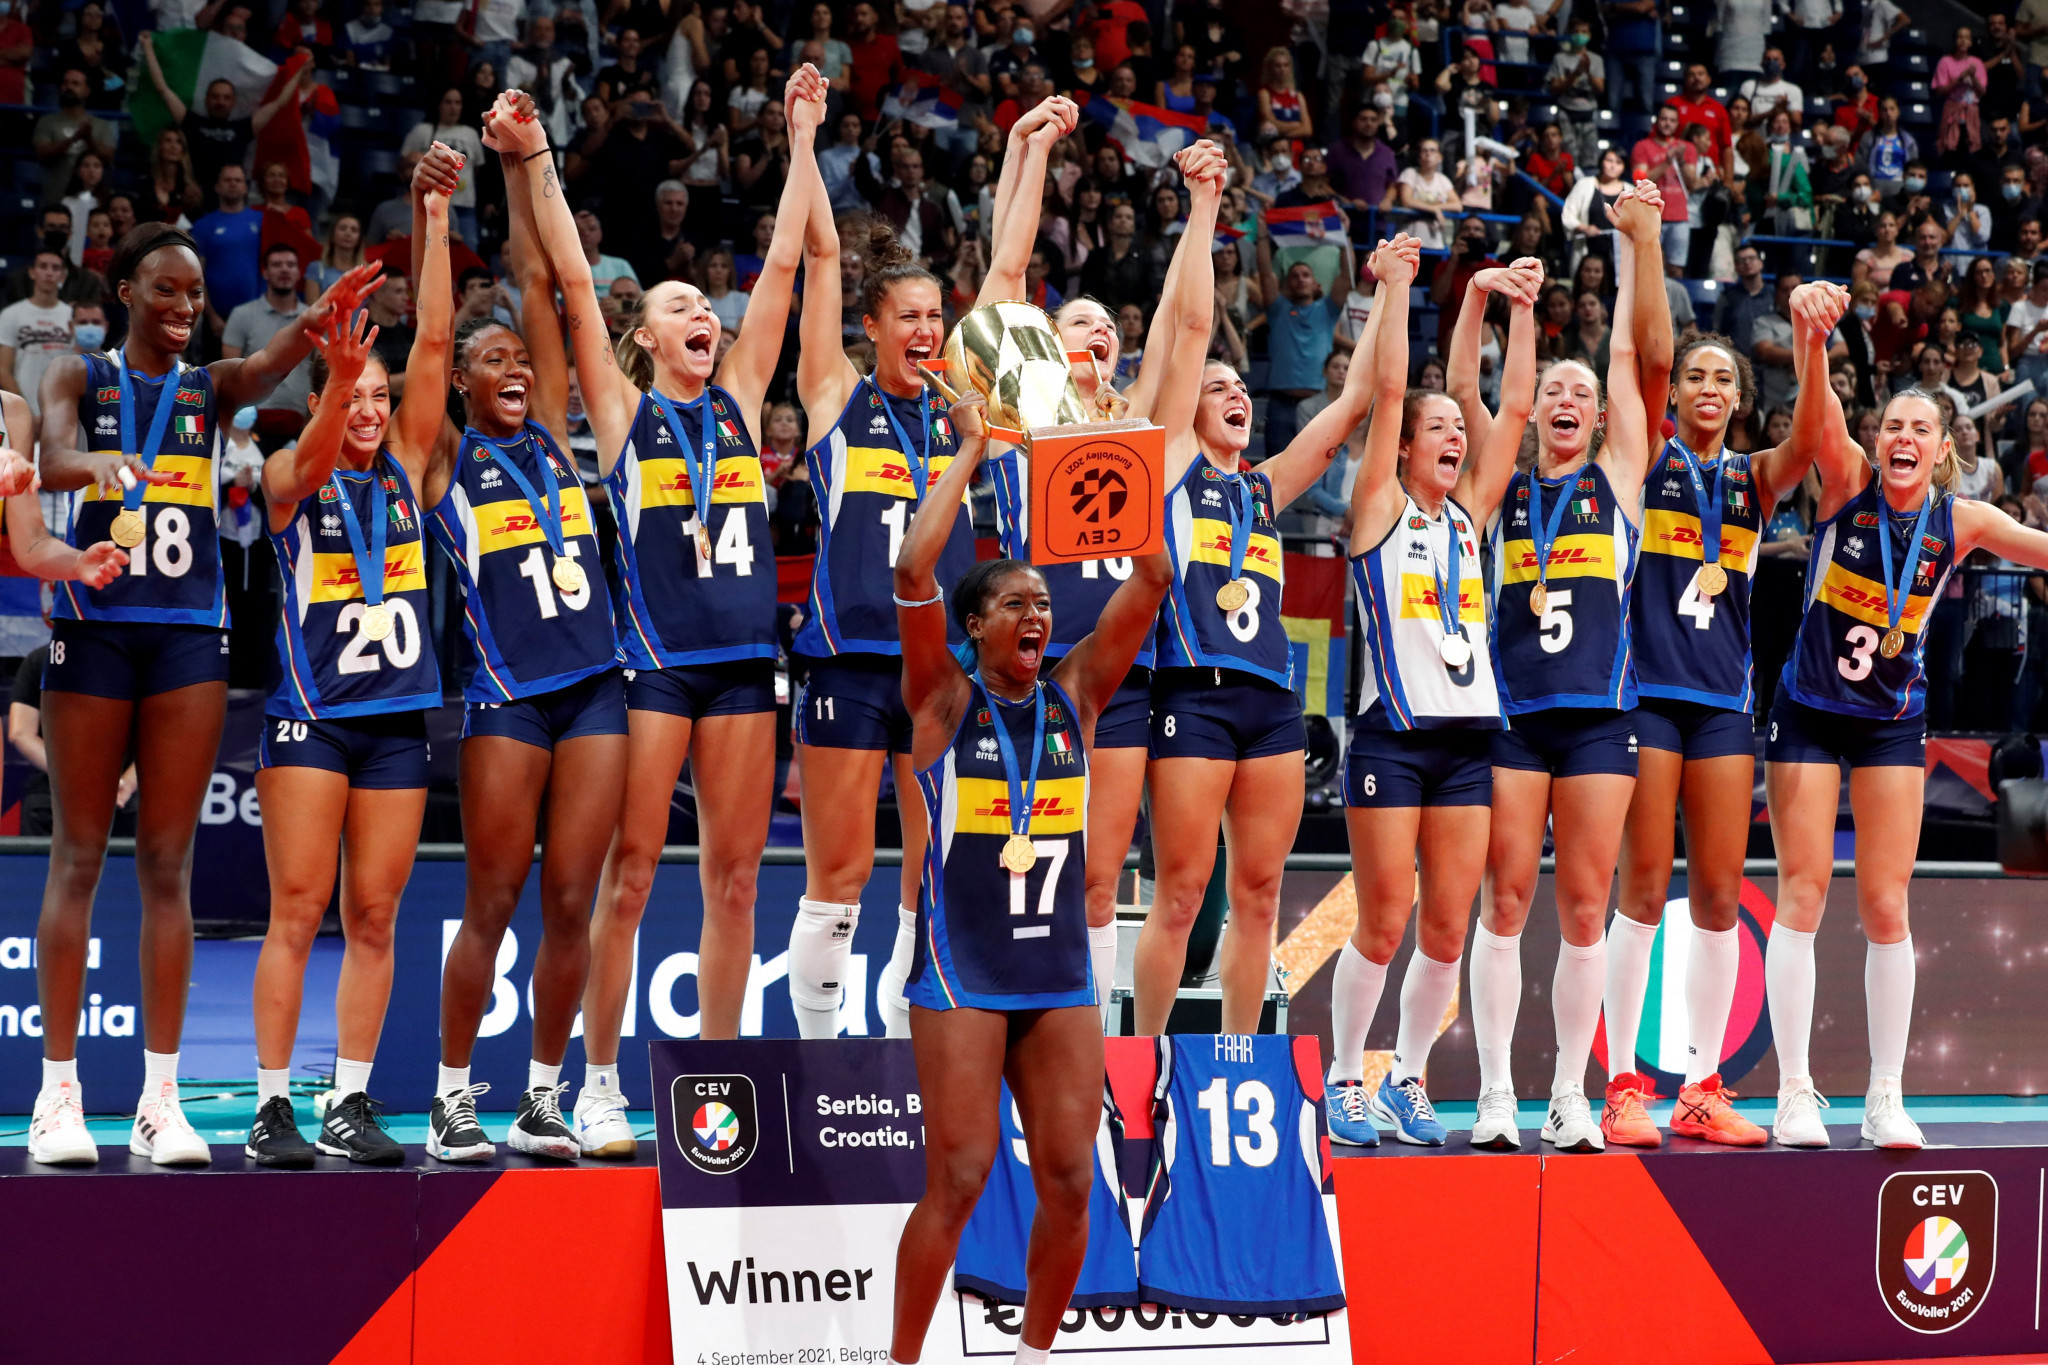 Italy clinch Women's EuroVolley title, ending Serbia's bid for three-in-a-row